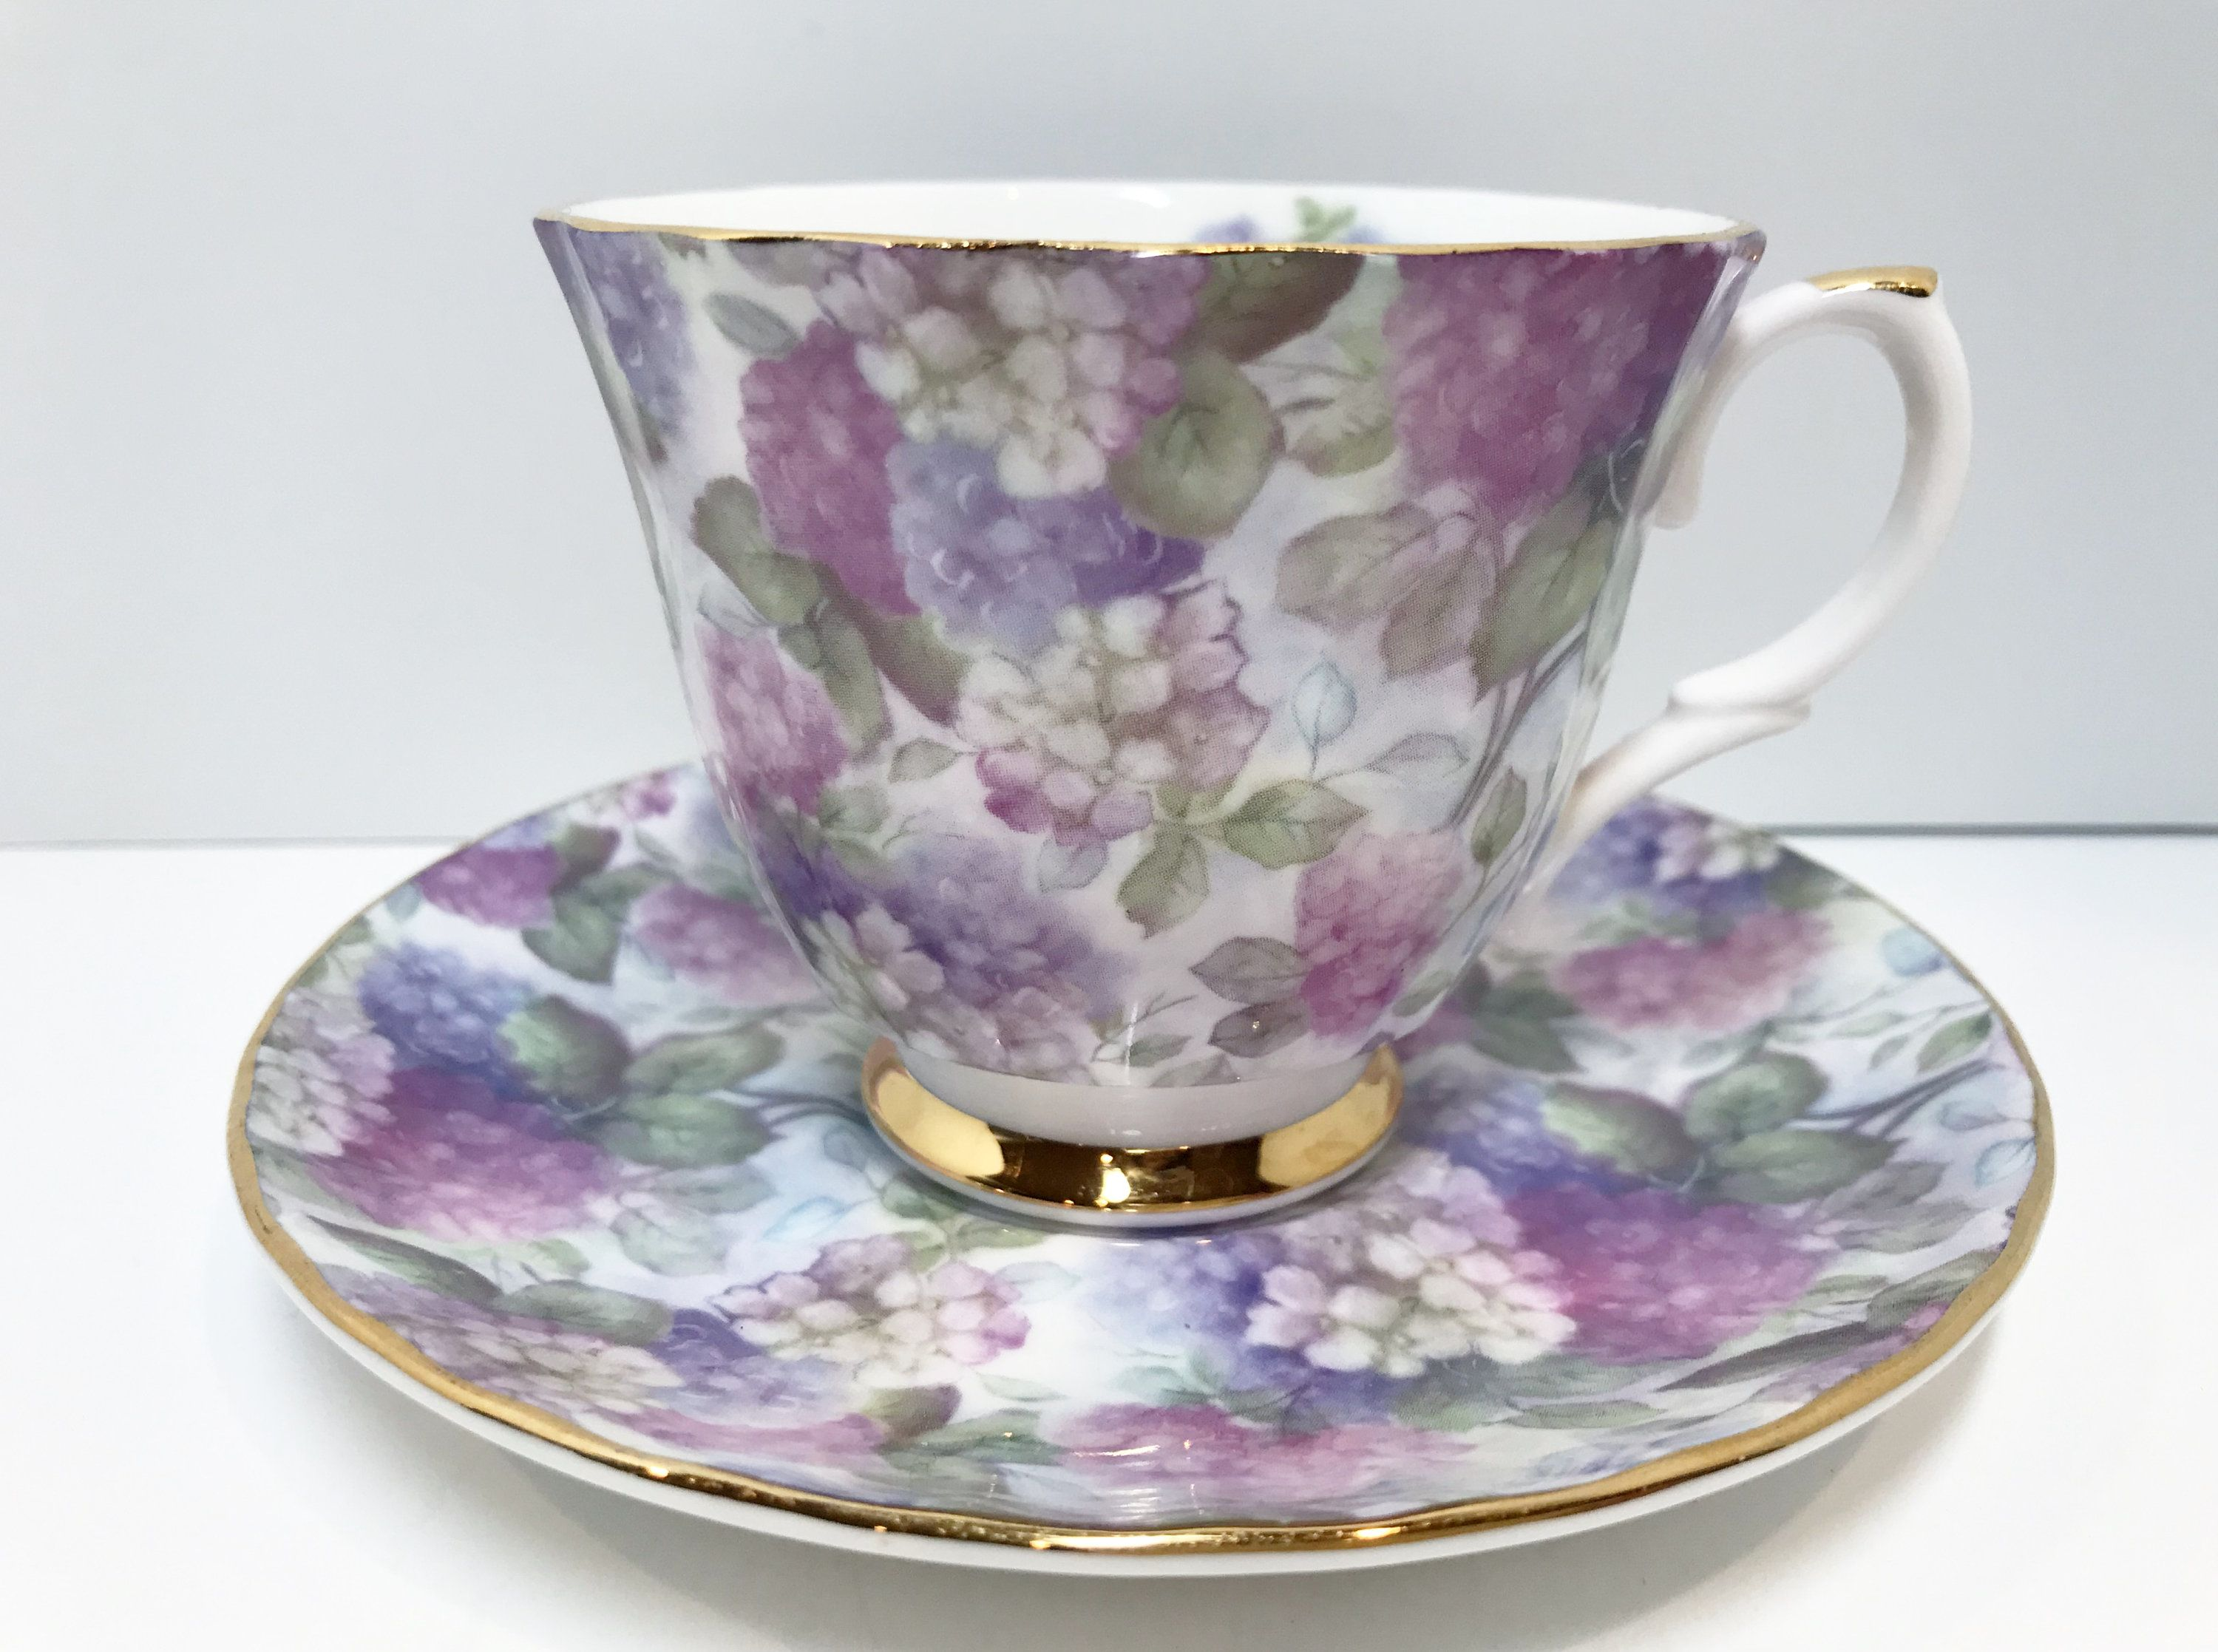 Lovely Lilac Royal Patrician Tea Cup and Saucer, English